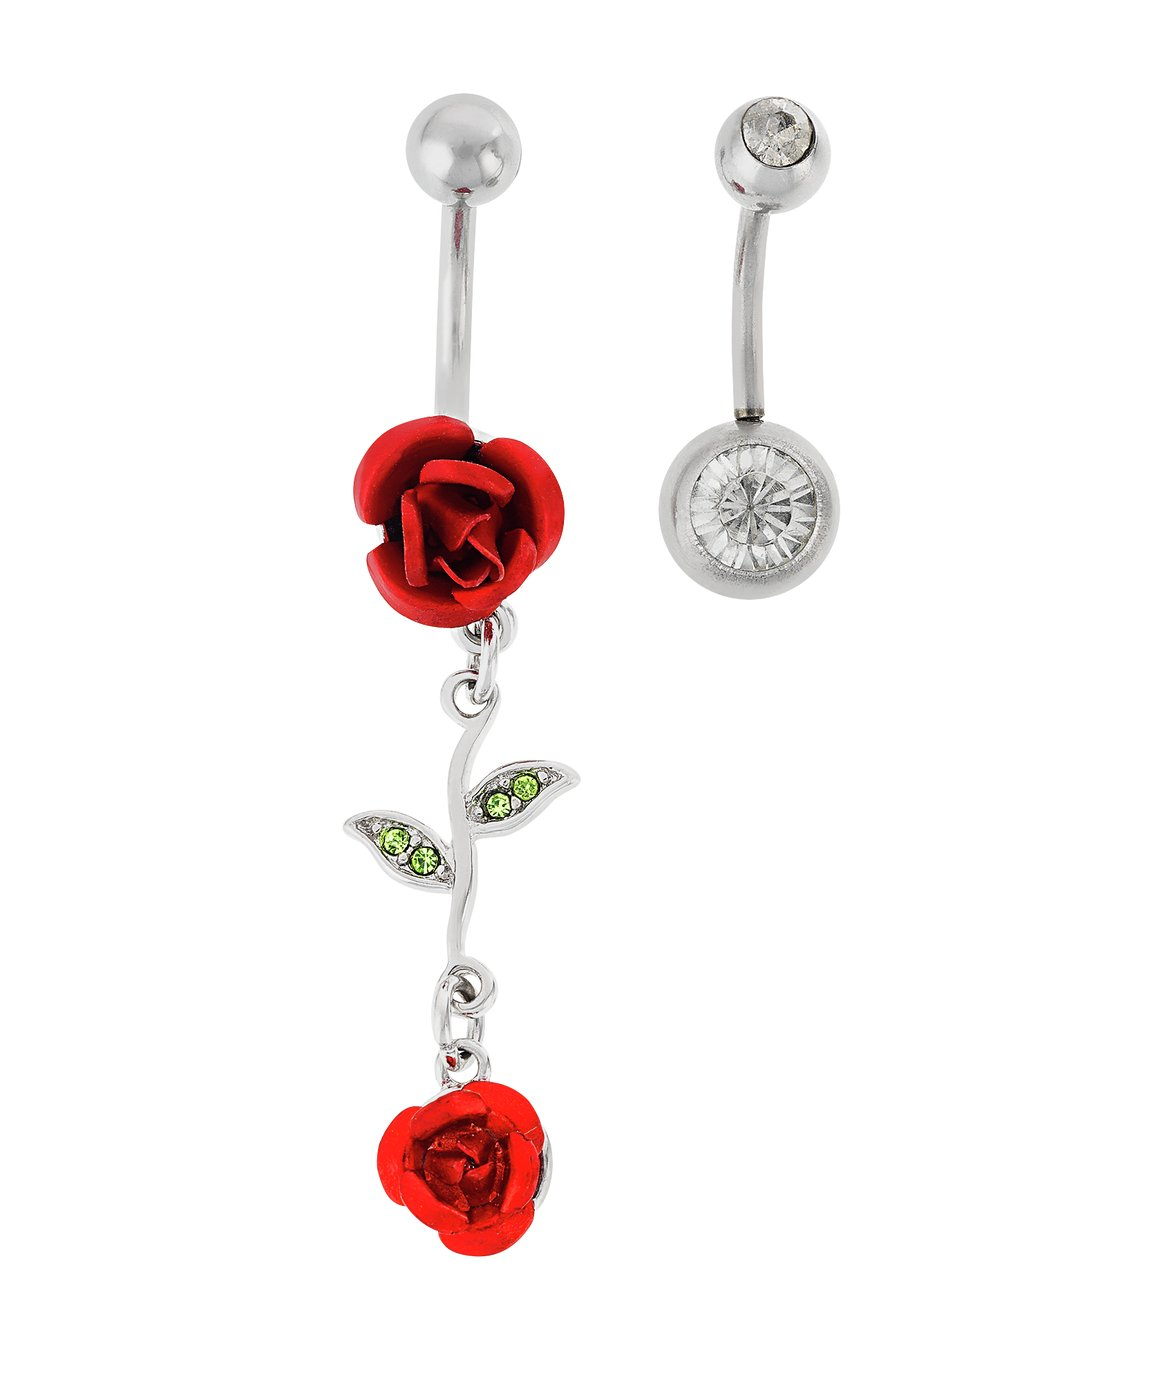 263e13a0f State of Mine Steel Rose Crystal Belly Bars - Set of 2 from State of Mine